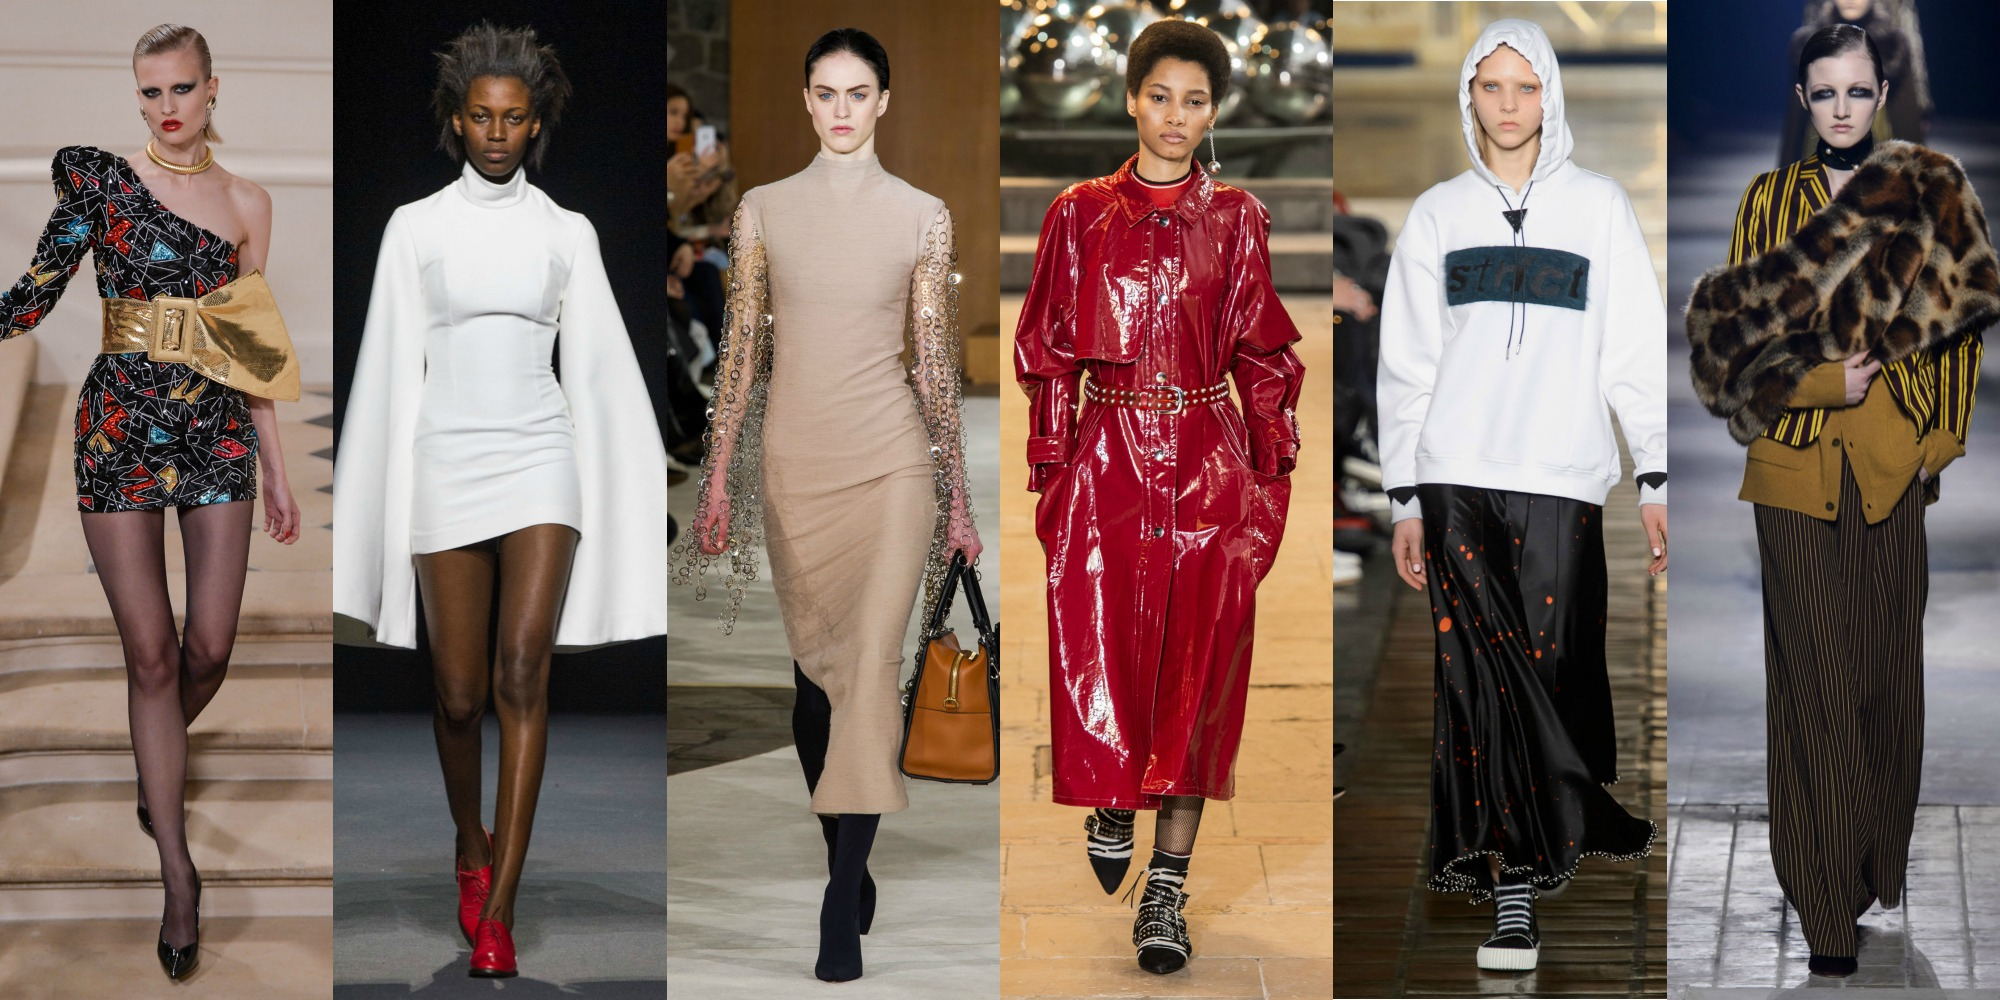 Top Fashion Trends For 2018 - Biggest 2018 Fashion Trends 47